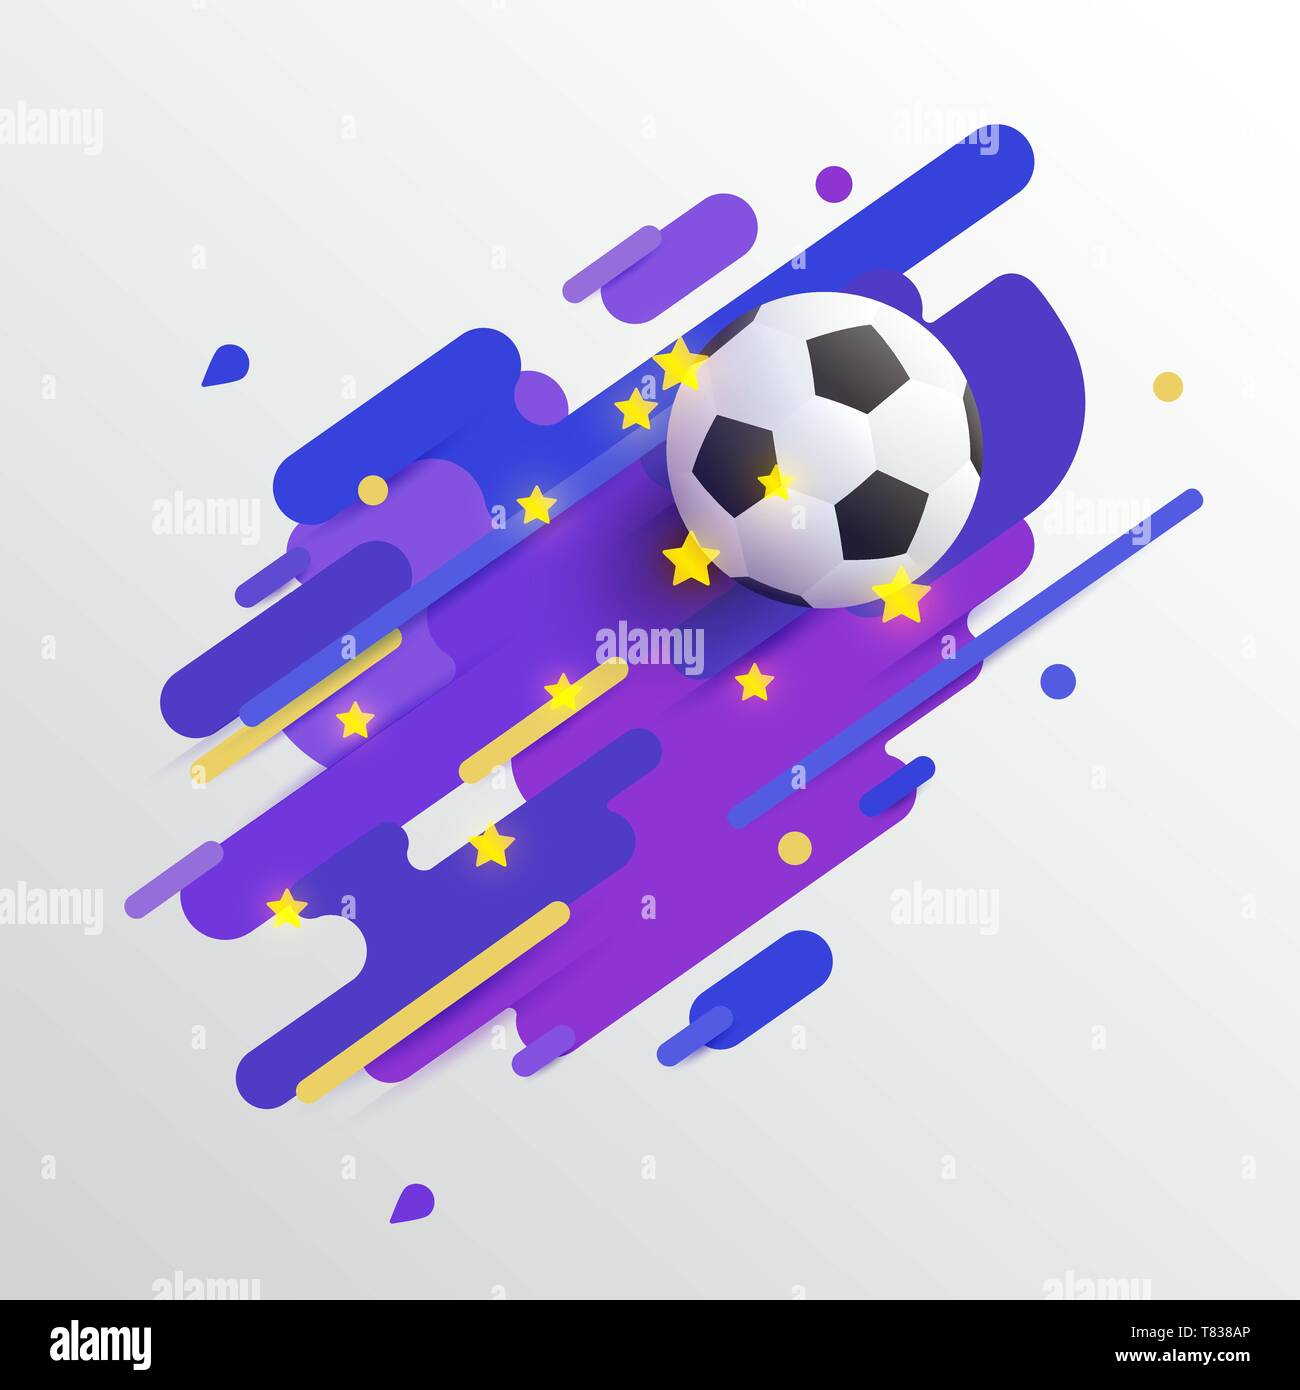 Realistic soccer ball, football, on color bars with bright stars. Vector illustration icon or banners design for soccer championship, games, tournamen - Stock Vector